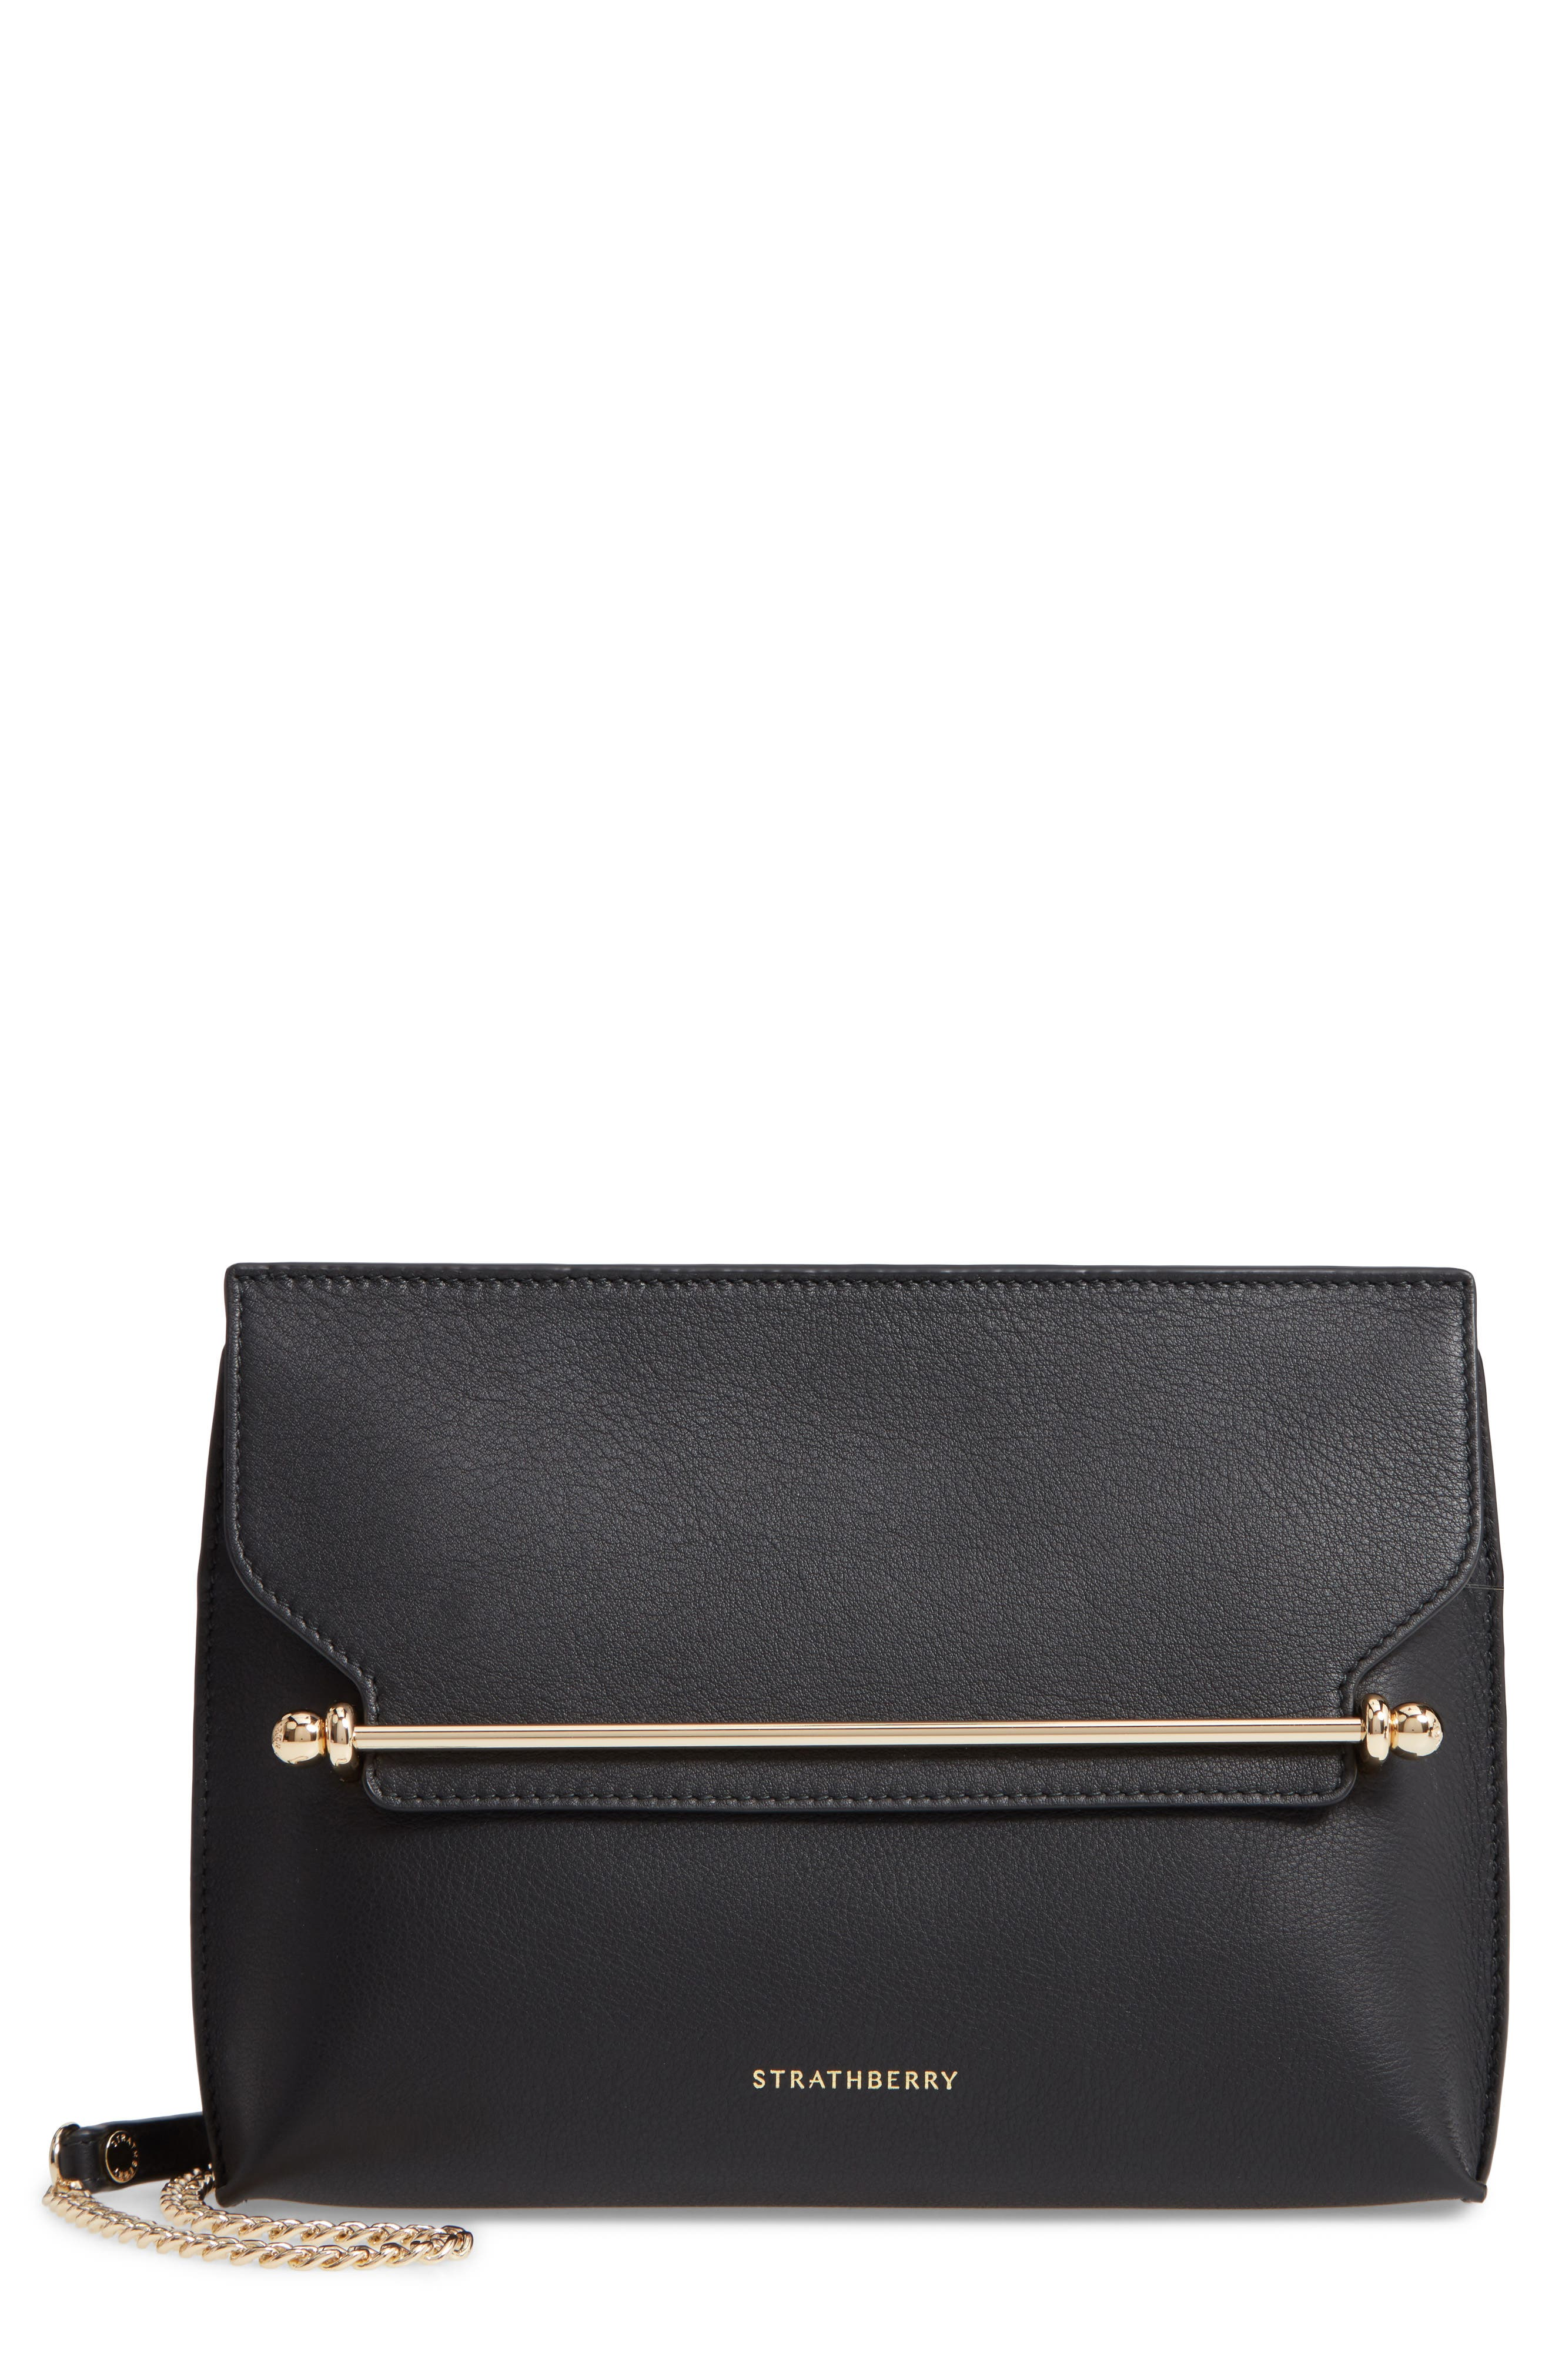 STRATHBERRY East/West Stylist Calfskin Leather Clutch, Main, color, BLACK